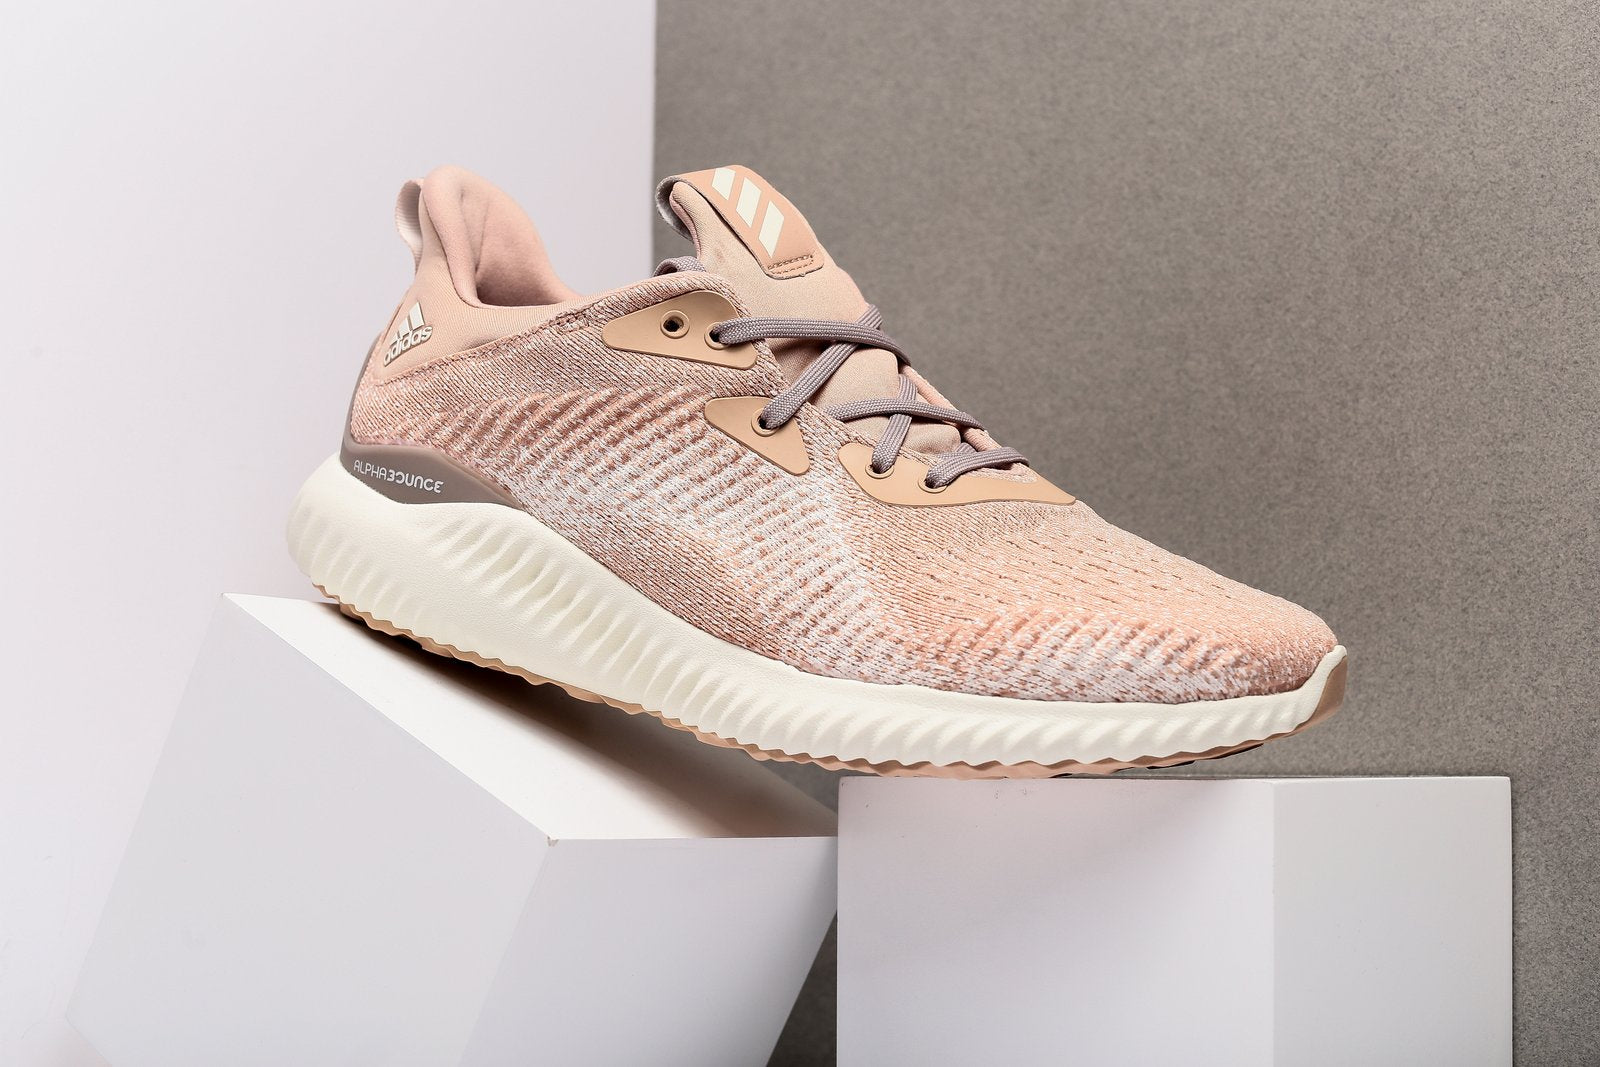 5bc45d0446060 ADIDAS ALPHABOUNCE 1 WOMENS - Oneness Boutique